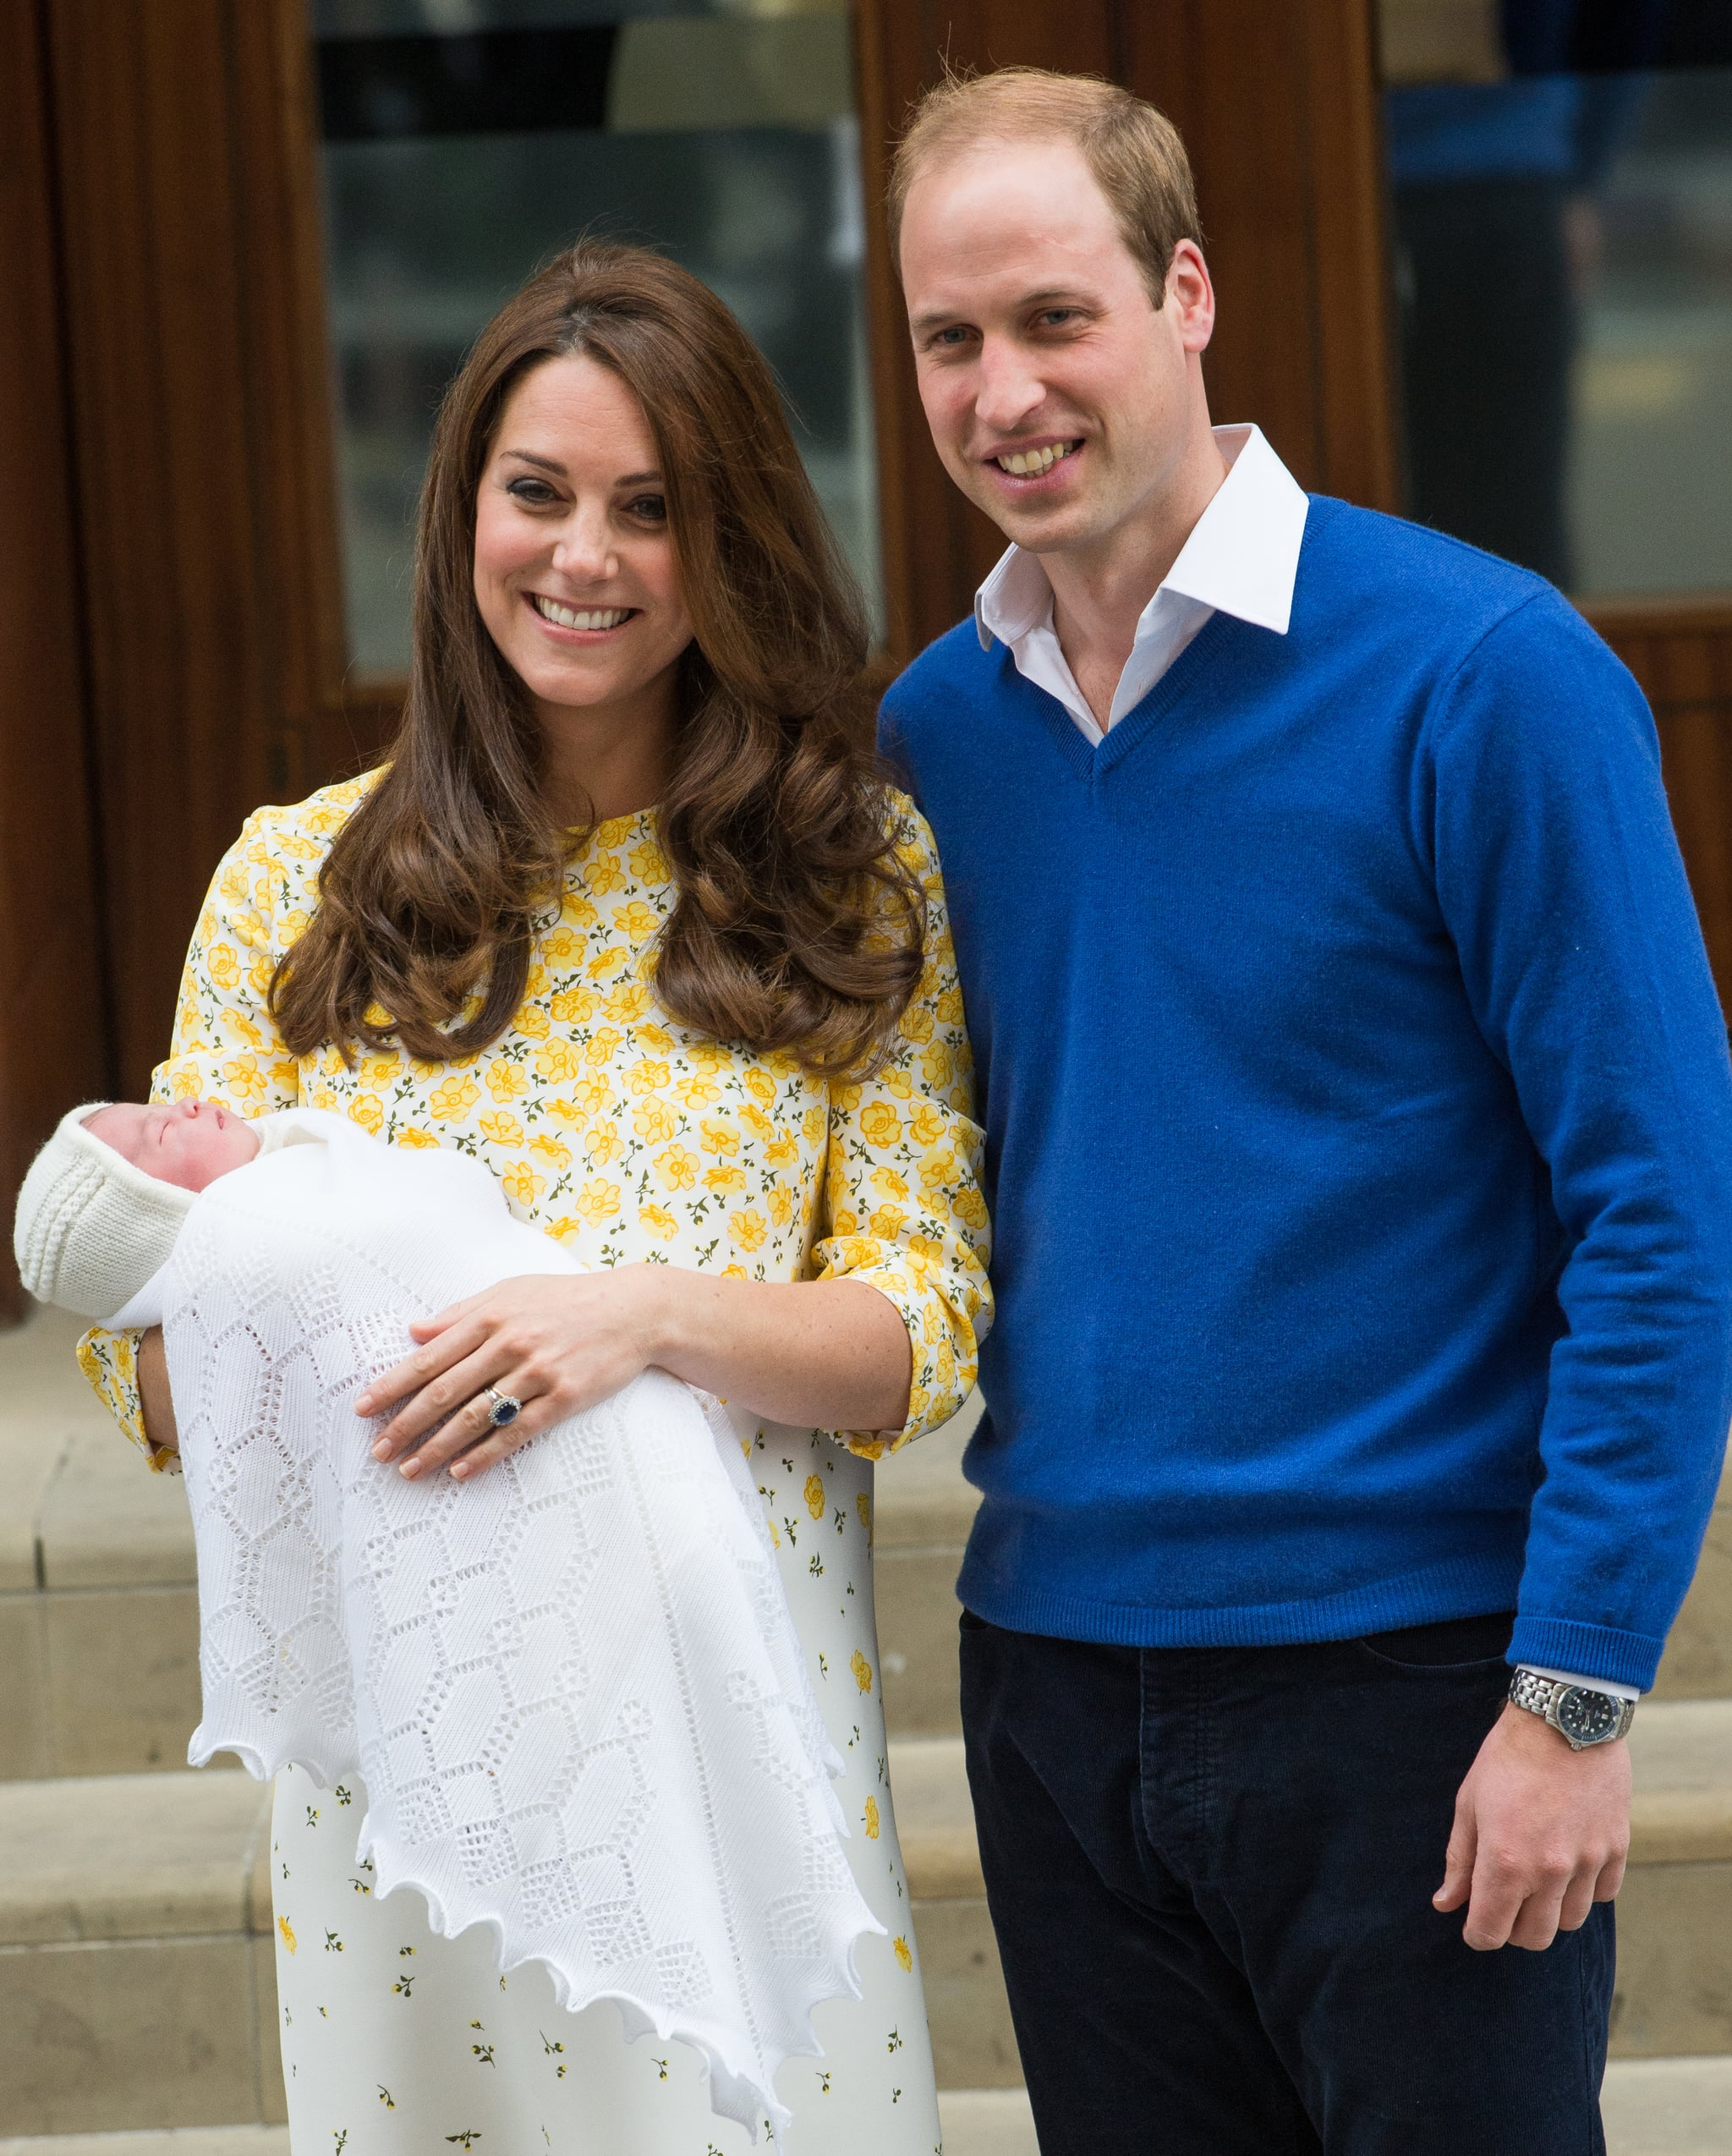 LONDON, ENGLAND - MAY 02:  Prince William, Duke of Cambridge and Catherine, Duchess of Cambridge depart the Lindo Wing with their new baby at St Mary's Hospital on May 2, 2015 in London, England.  (Photo by Samir Hussein/WireImage)